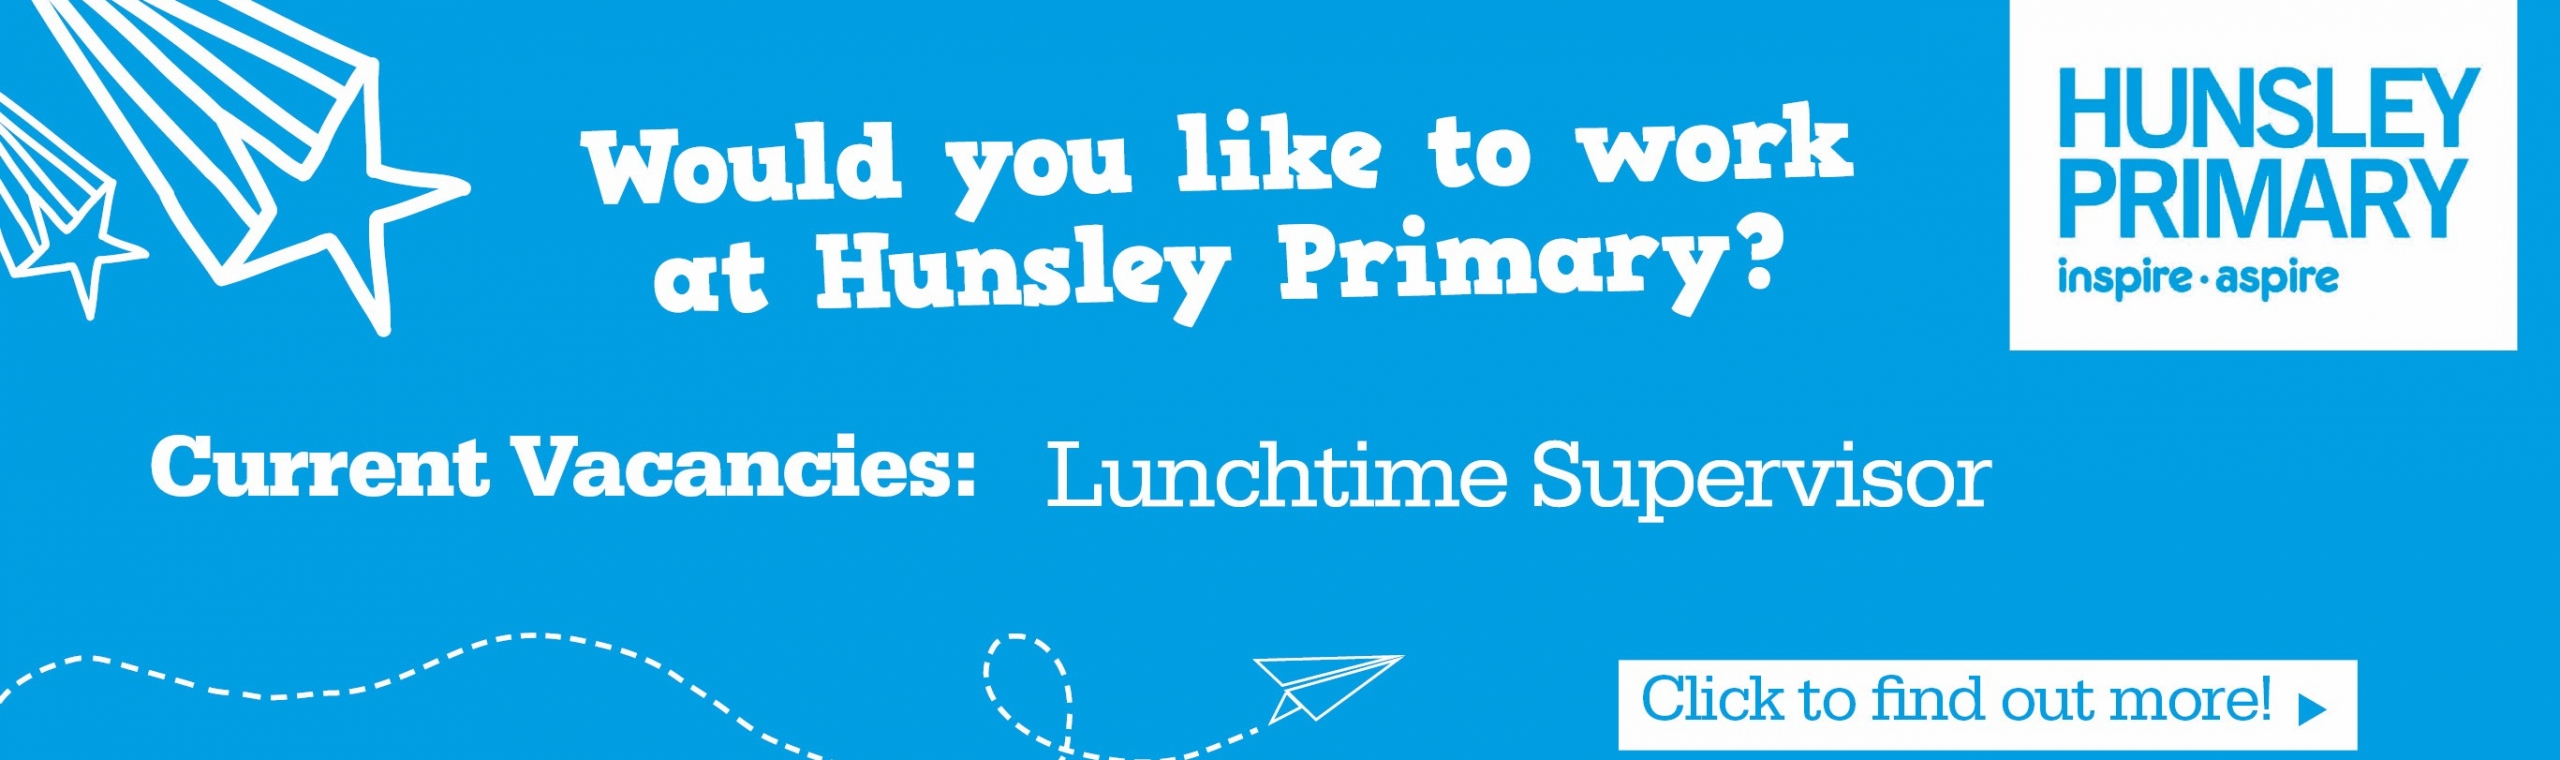 Hunsley_Primary_Banner – Current Vacancies – Lunchtime supervisor